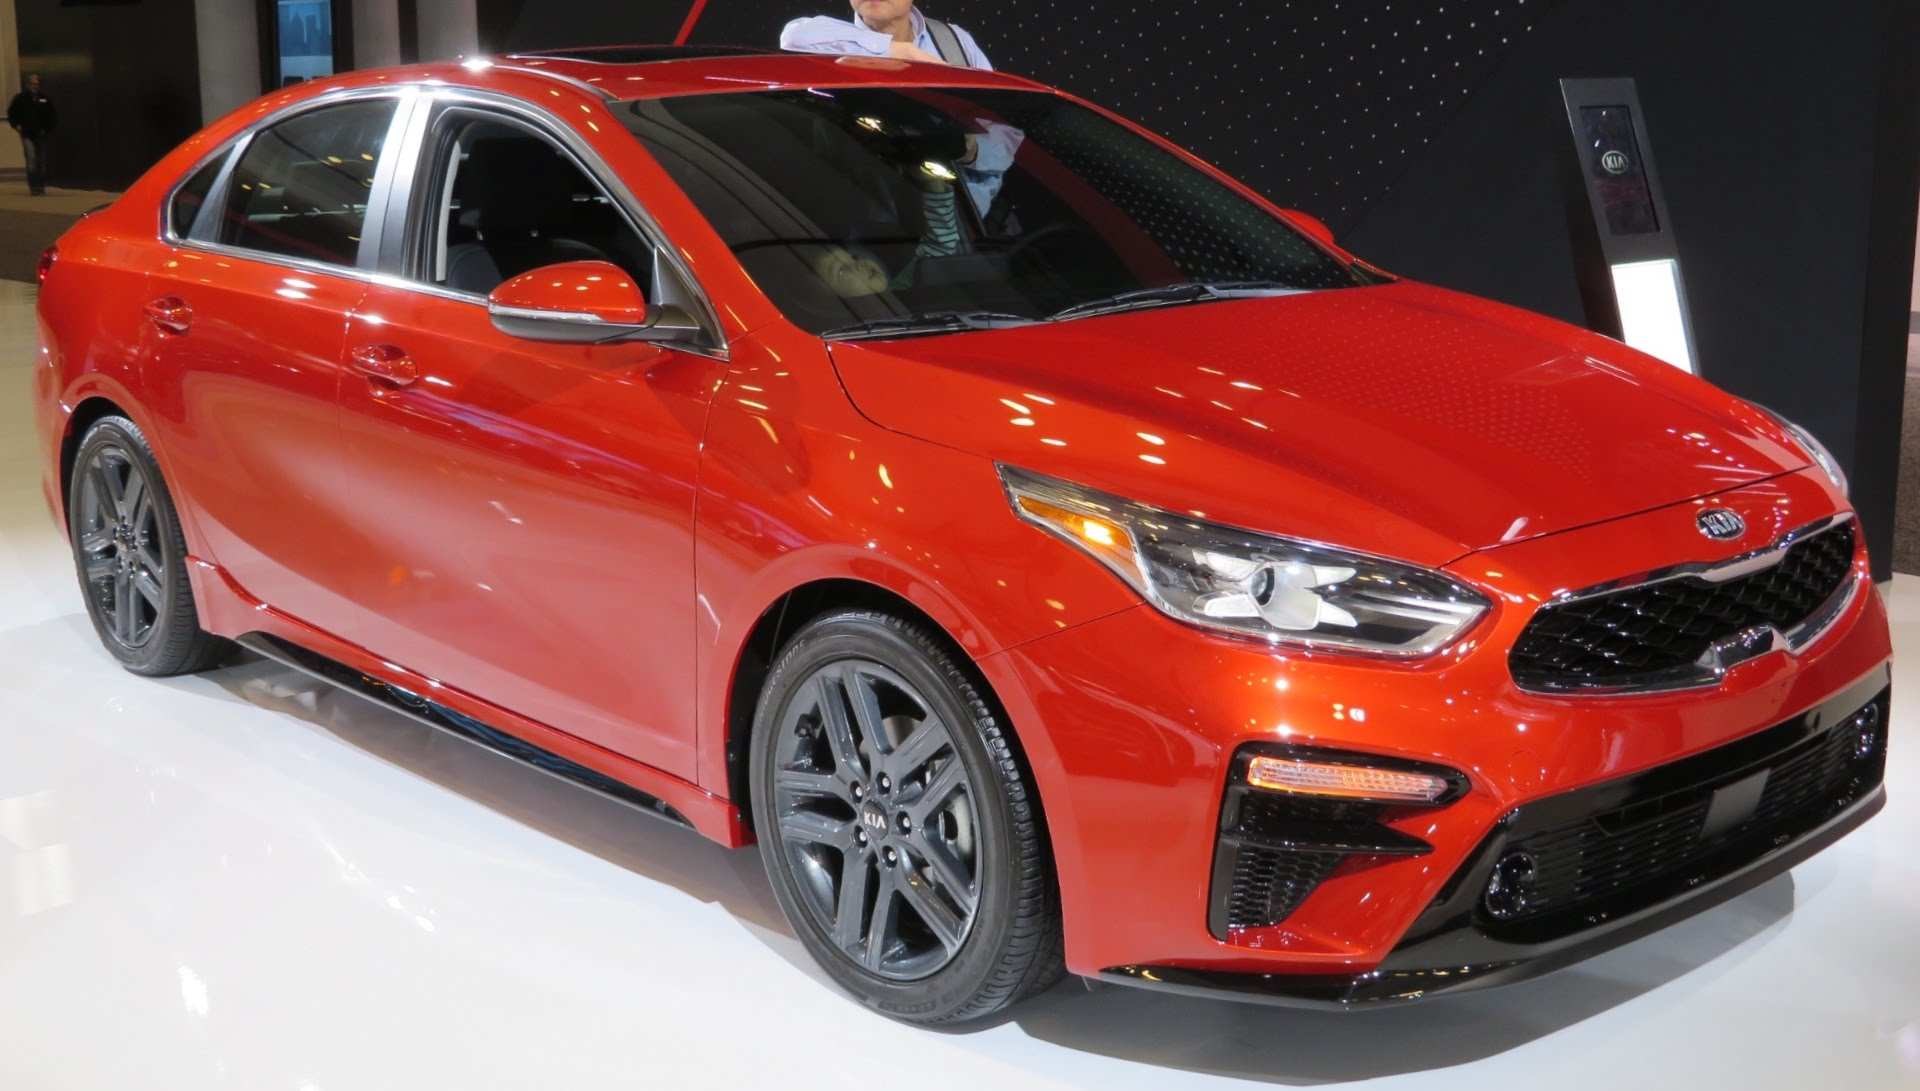 70 Great Kia Koup 2020 Pictures with Kia Koup 2020